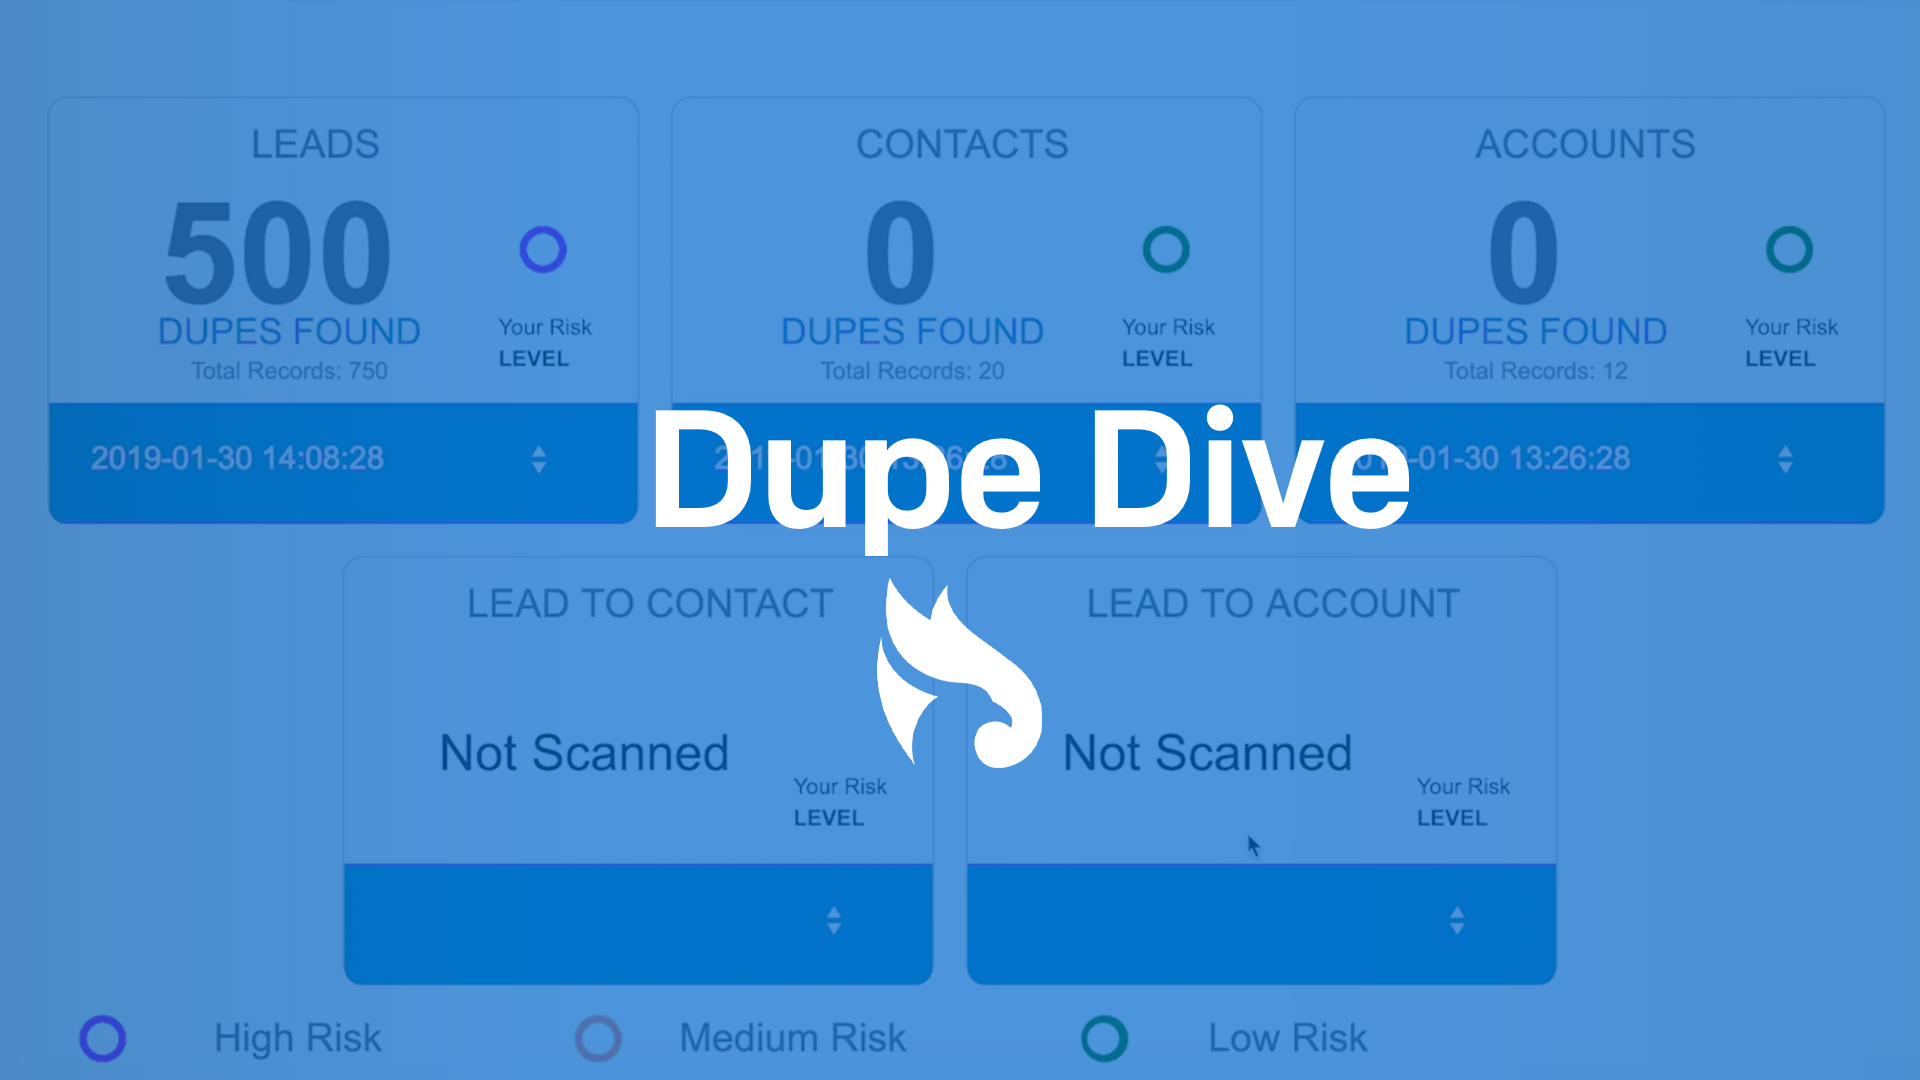 Dupe Dive Overview